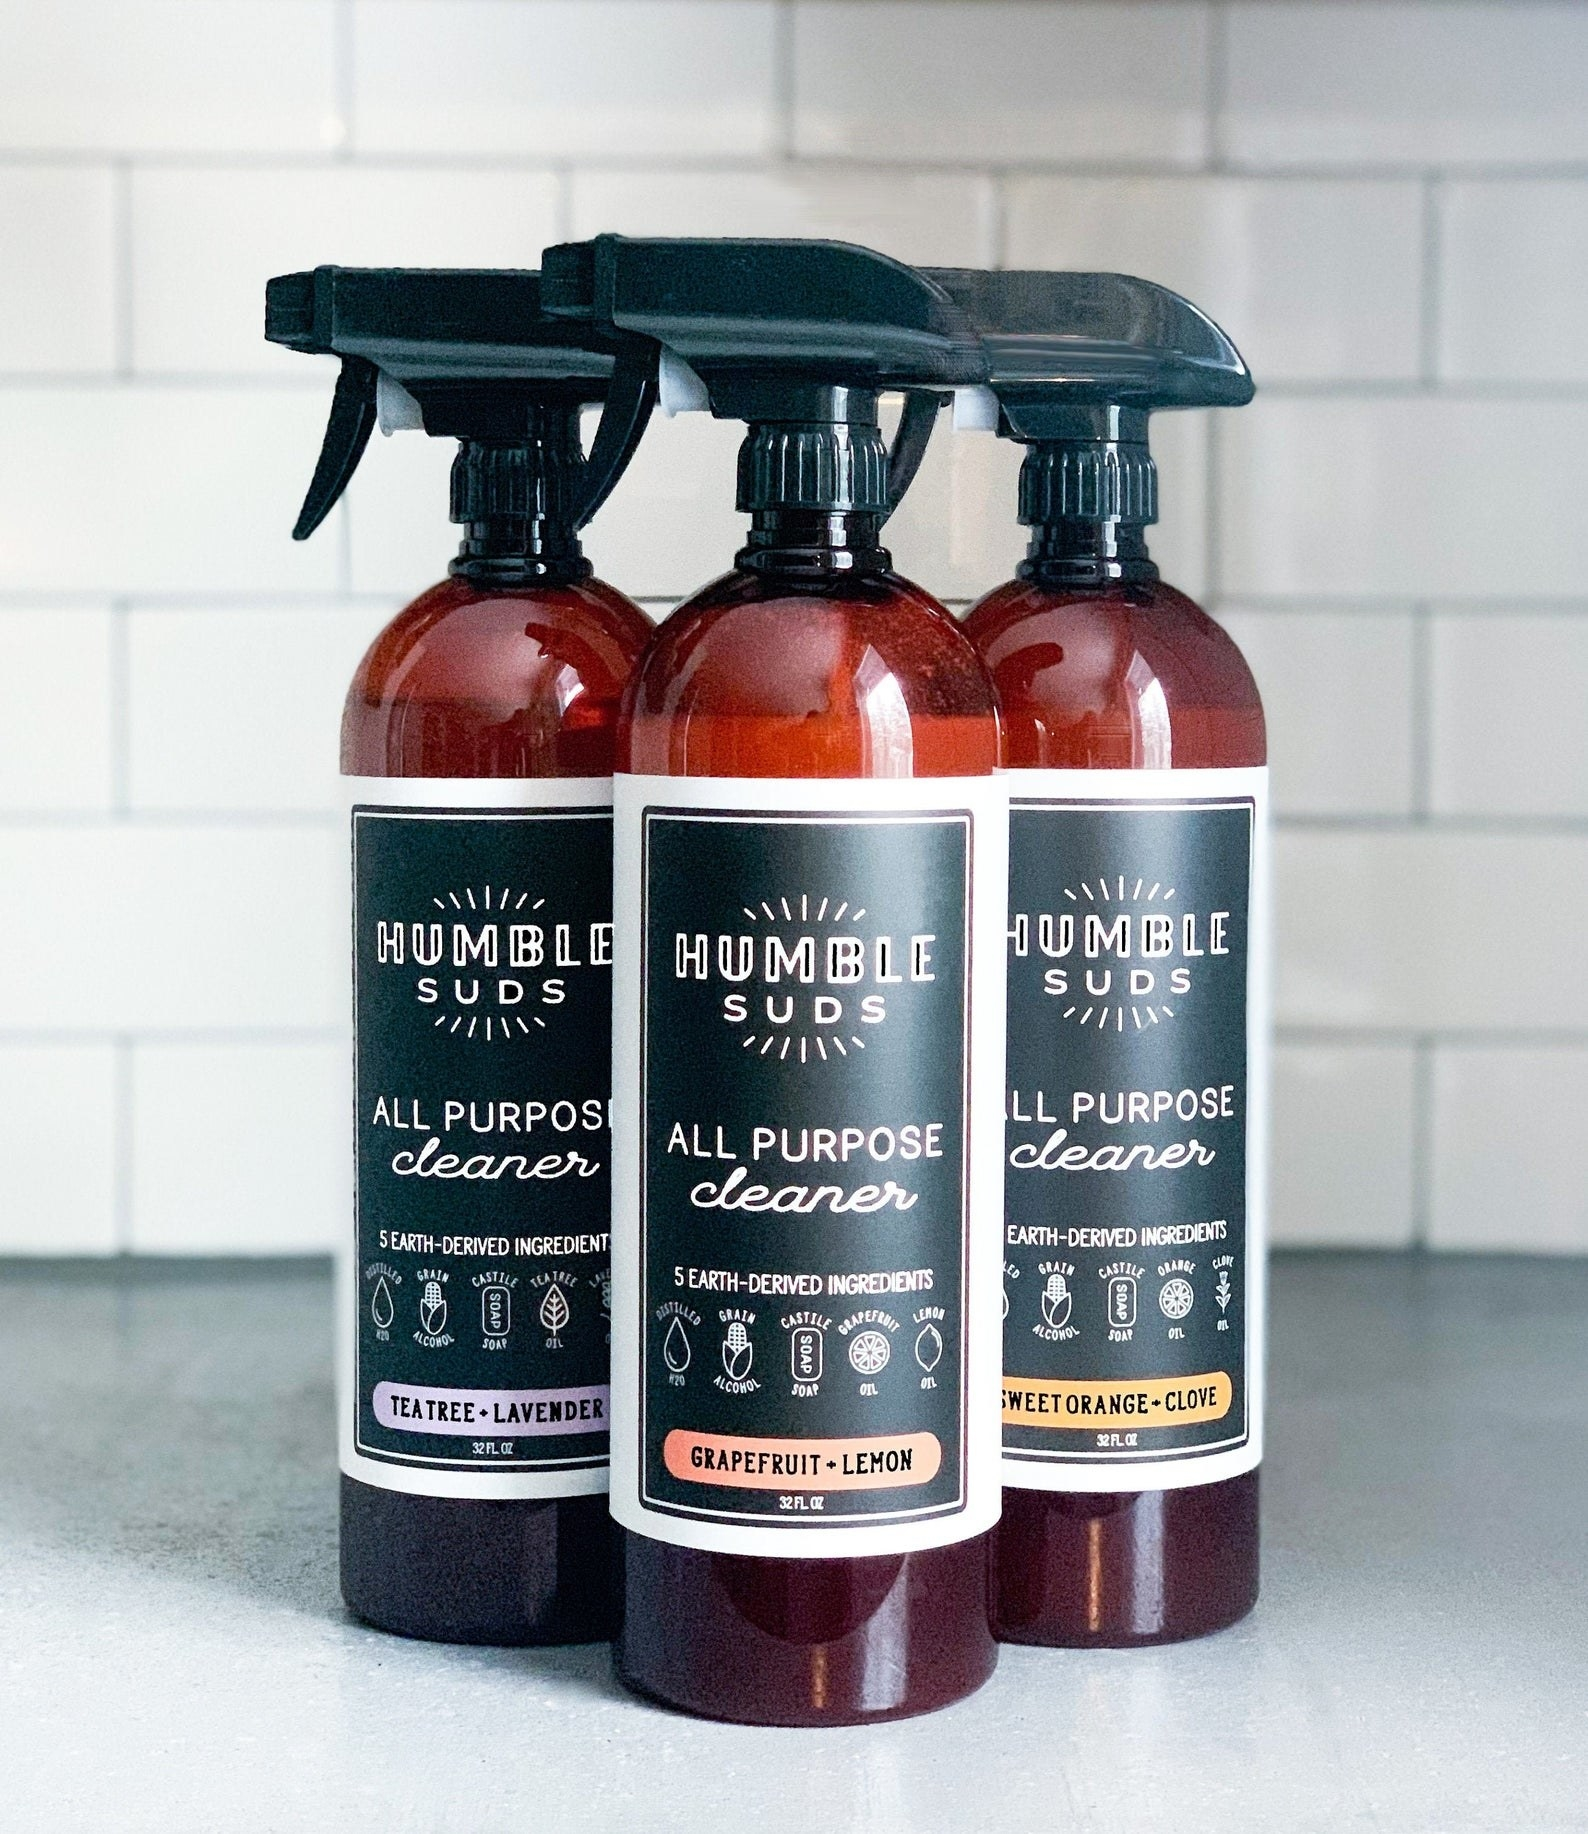 Three bottles of Humble Suds All Purpose Cleaner